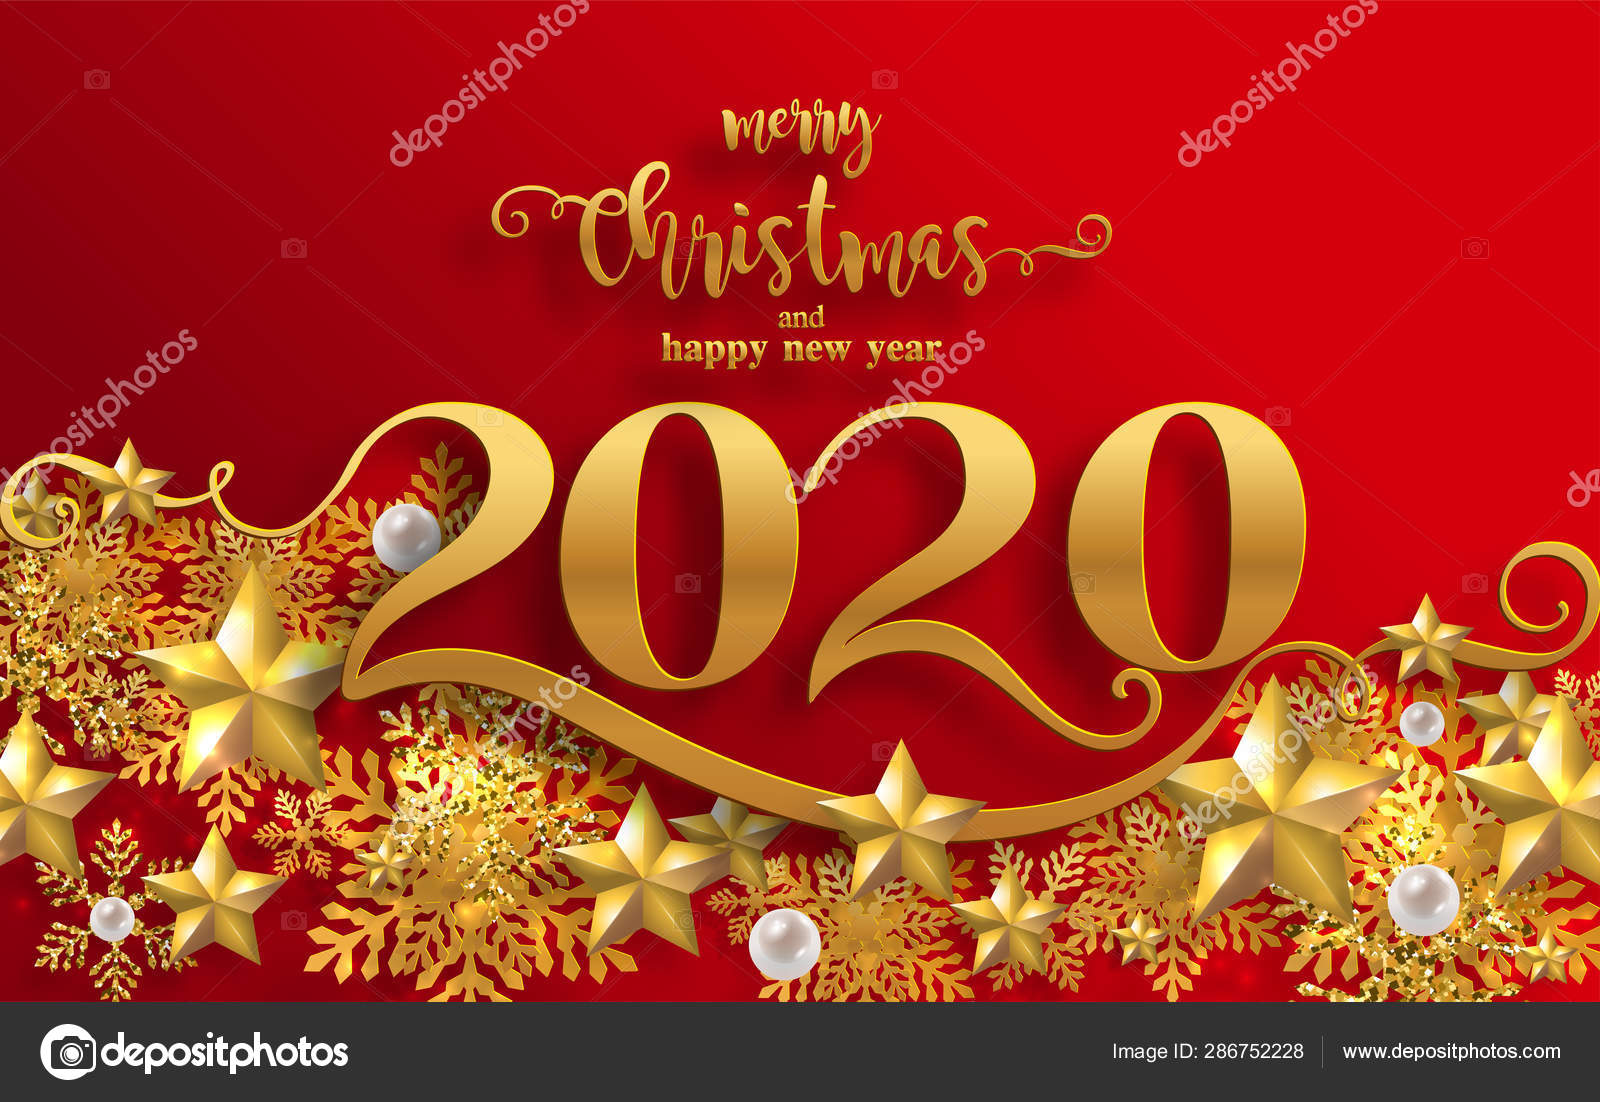 Merry Christmas Greetings Happy New Year 2020 Templates ...